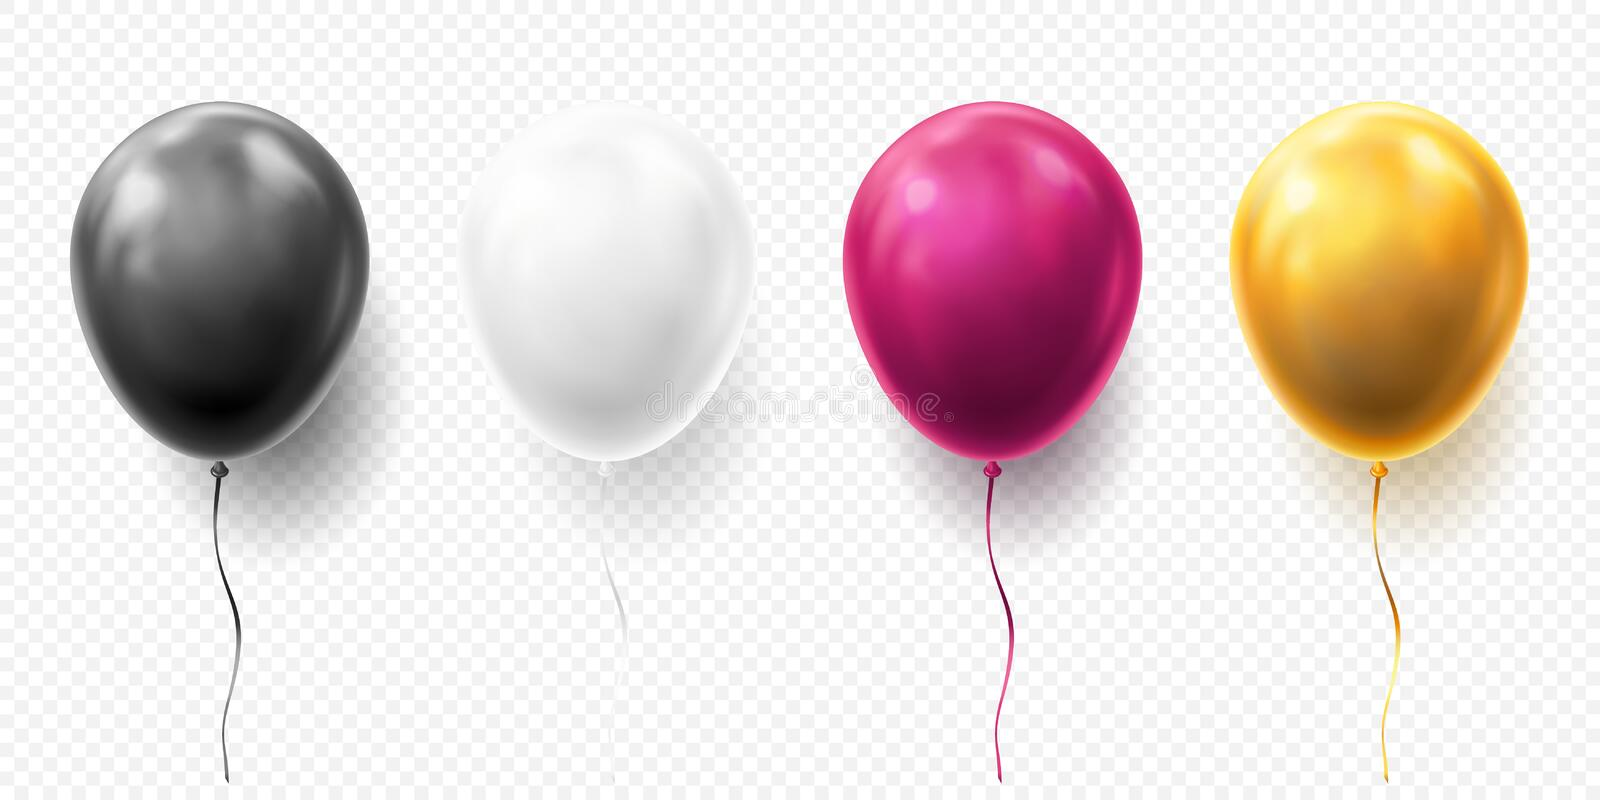 Realistic glossy golden, purple, black and white balloon vector illustration on transparent background. Balloons for royalty free illustration